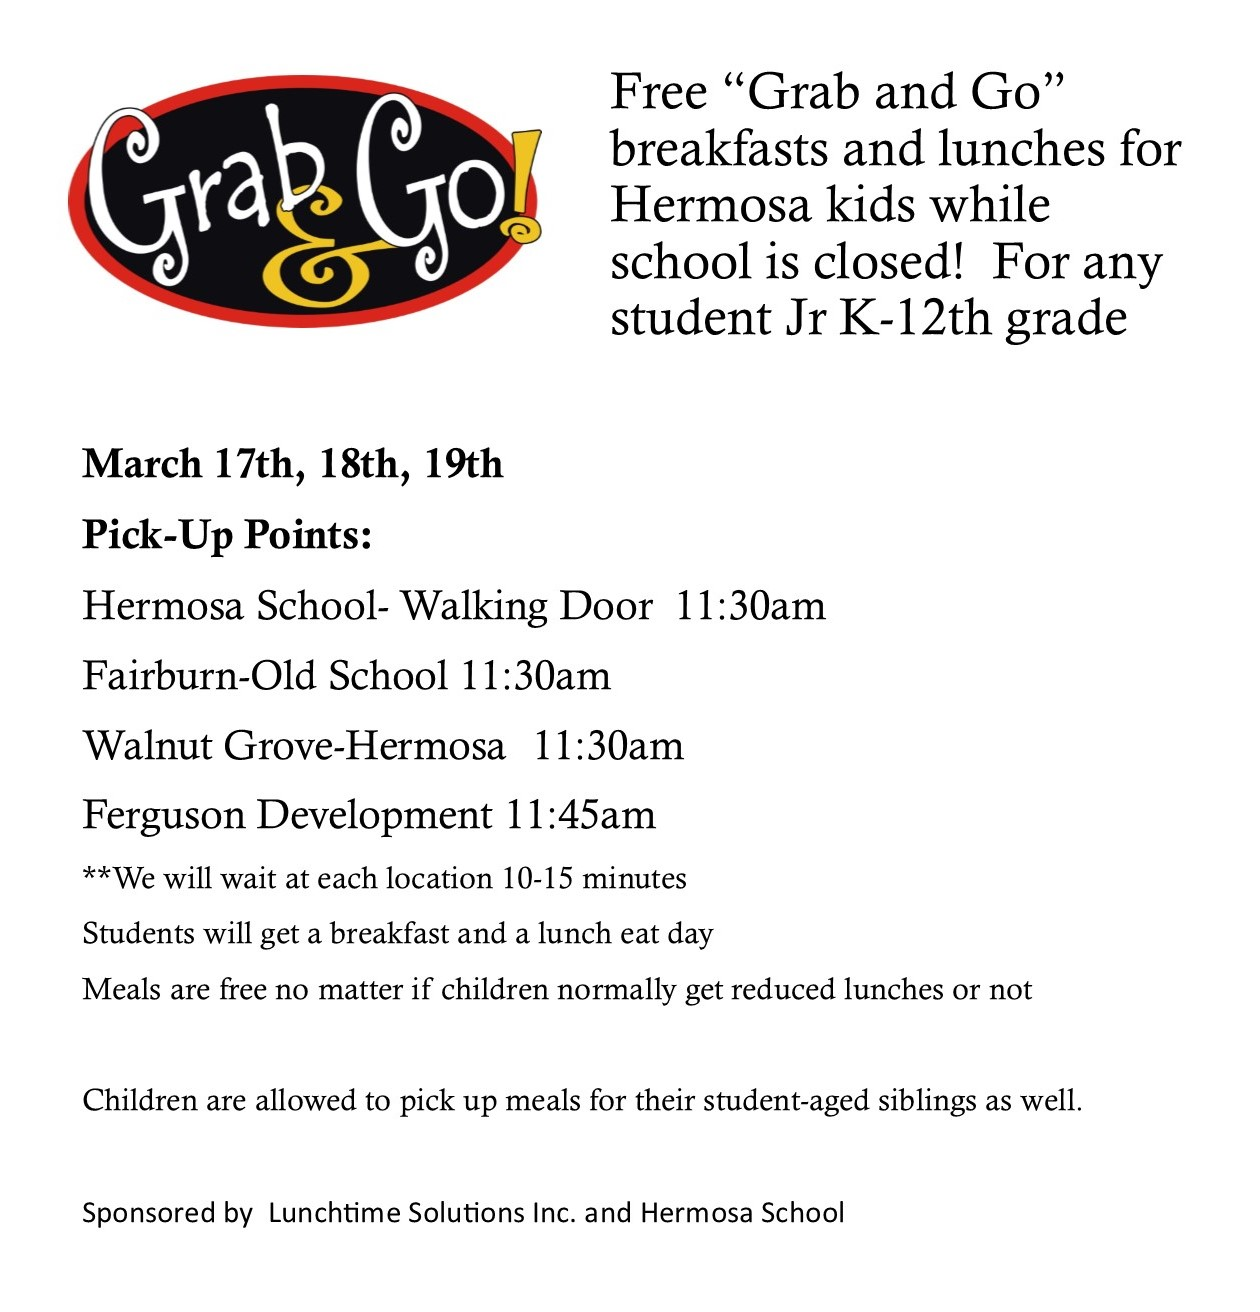 Free Breakfast and Lunches for Kids in Hermosa